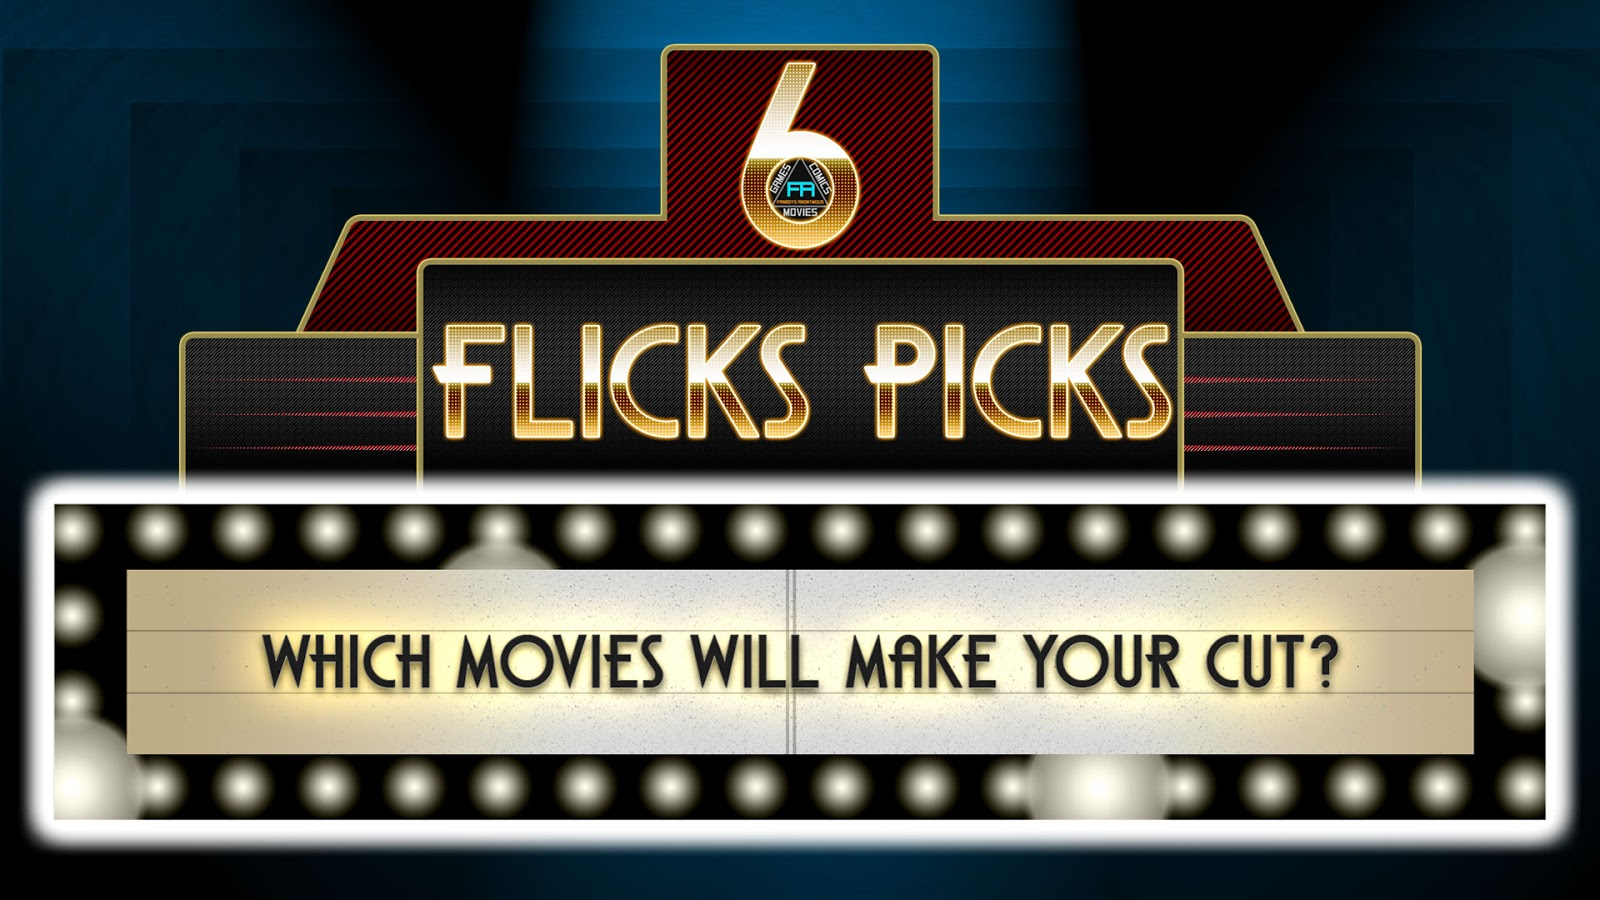 What movies are coming out 2017 6 Flicks Picks